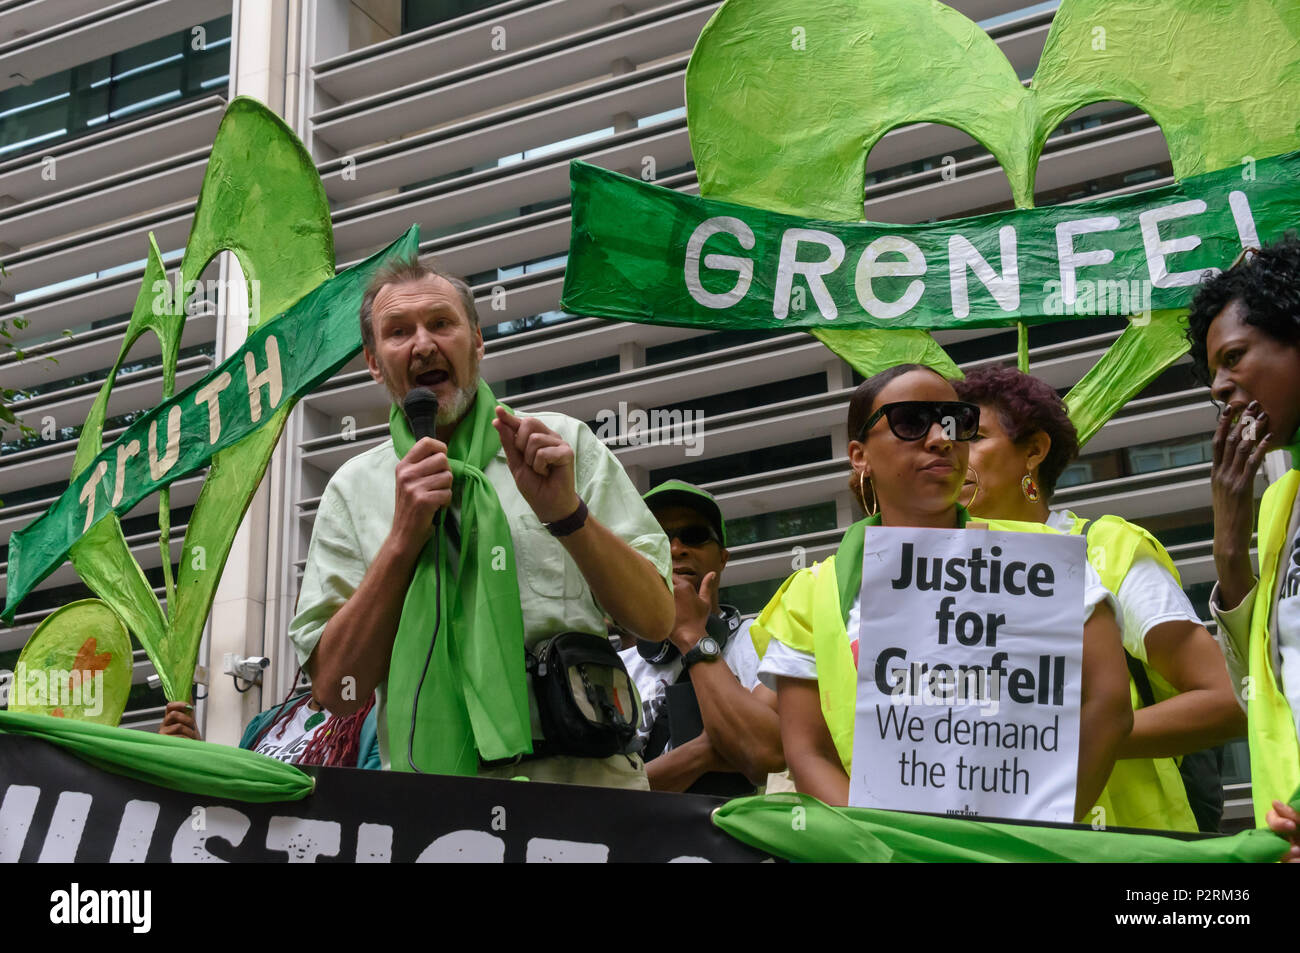 London, UK. 16th June 2018. NEU General Secretary Kevin Courtney speaks at the Home Office in solidarity with the 72 killed and the survivors of the Grenfell fire a year ago at a protest organised by Justice4Grenfell and the FBU (Fire Brigades Union.) After some speeches they marched to the Home Office for a brief protest before returning to Downing St for more speeches. Speakers complained of the many promises made by Theresa May which have been broken, despite her promise all survivors would be rehoused in 3 weeks, a year later 50% of survivors and displaced families are still in emergency a - Stock Image